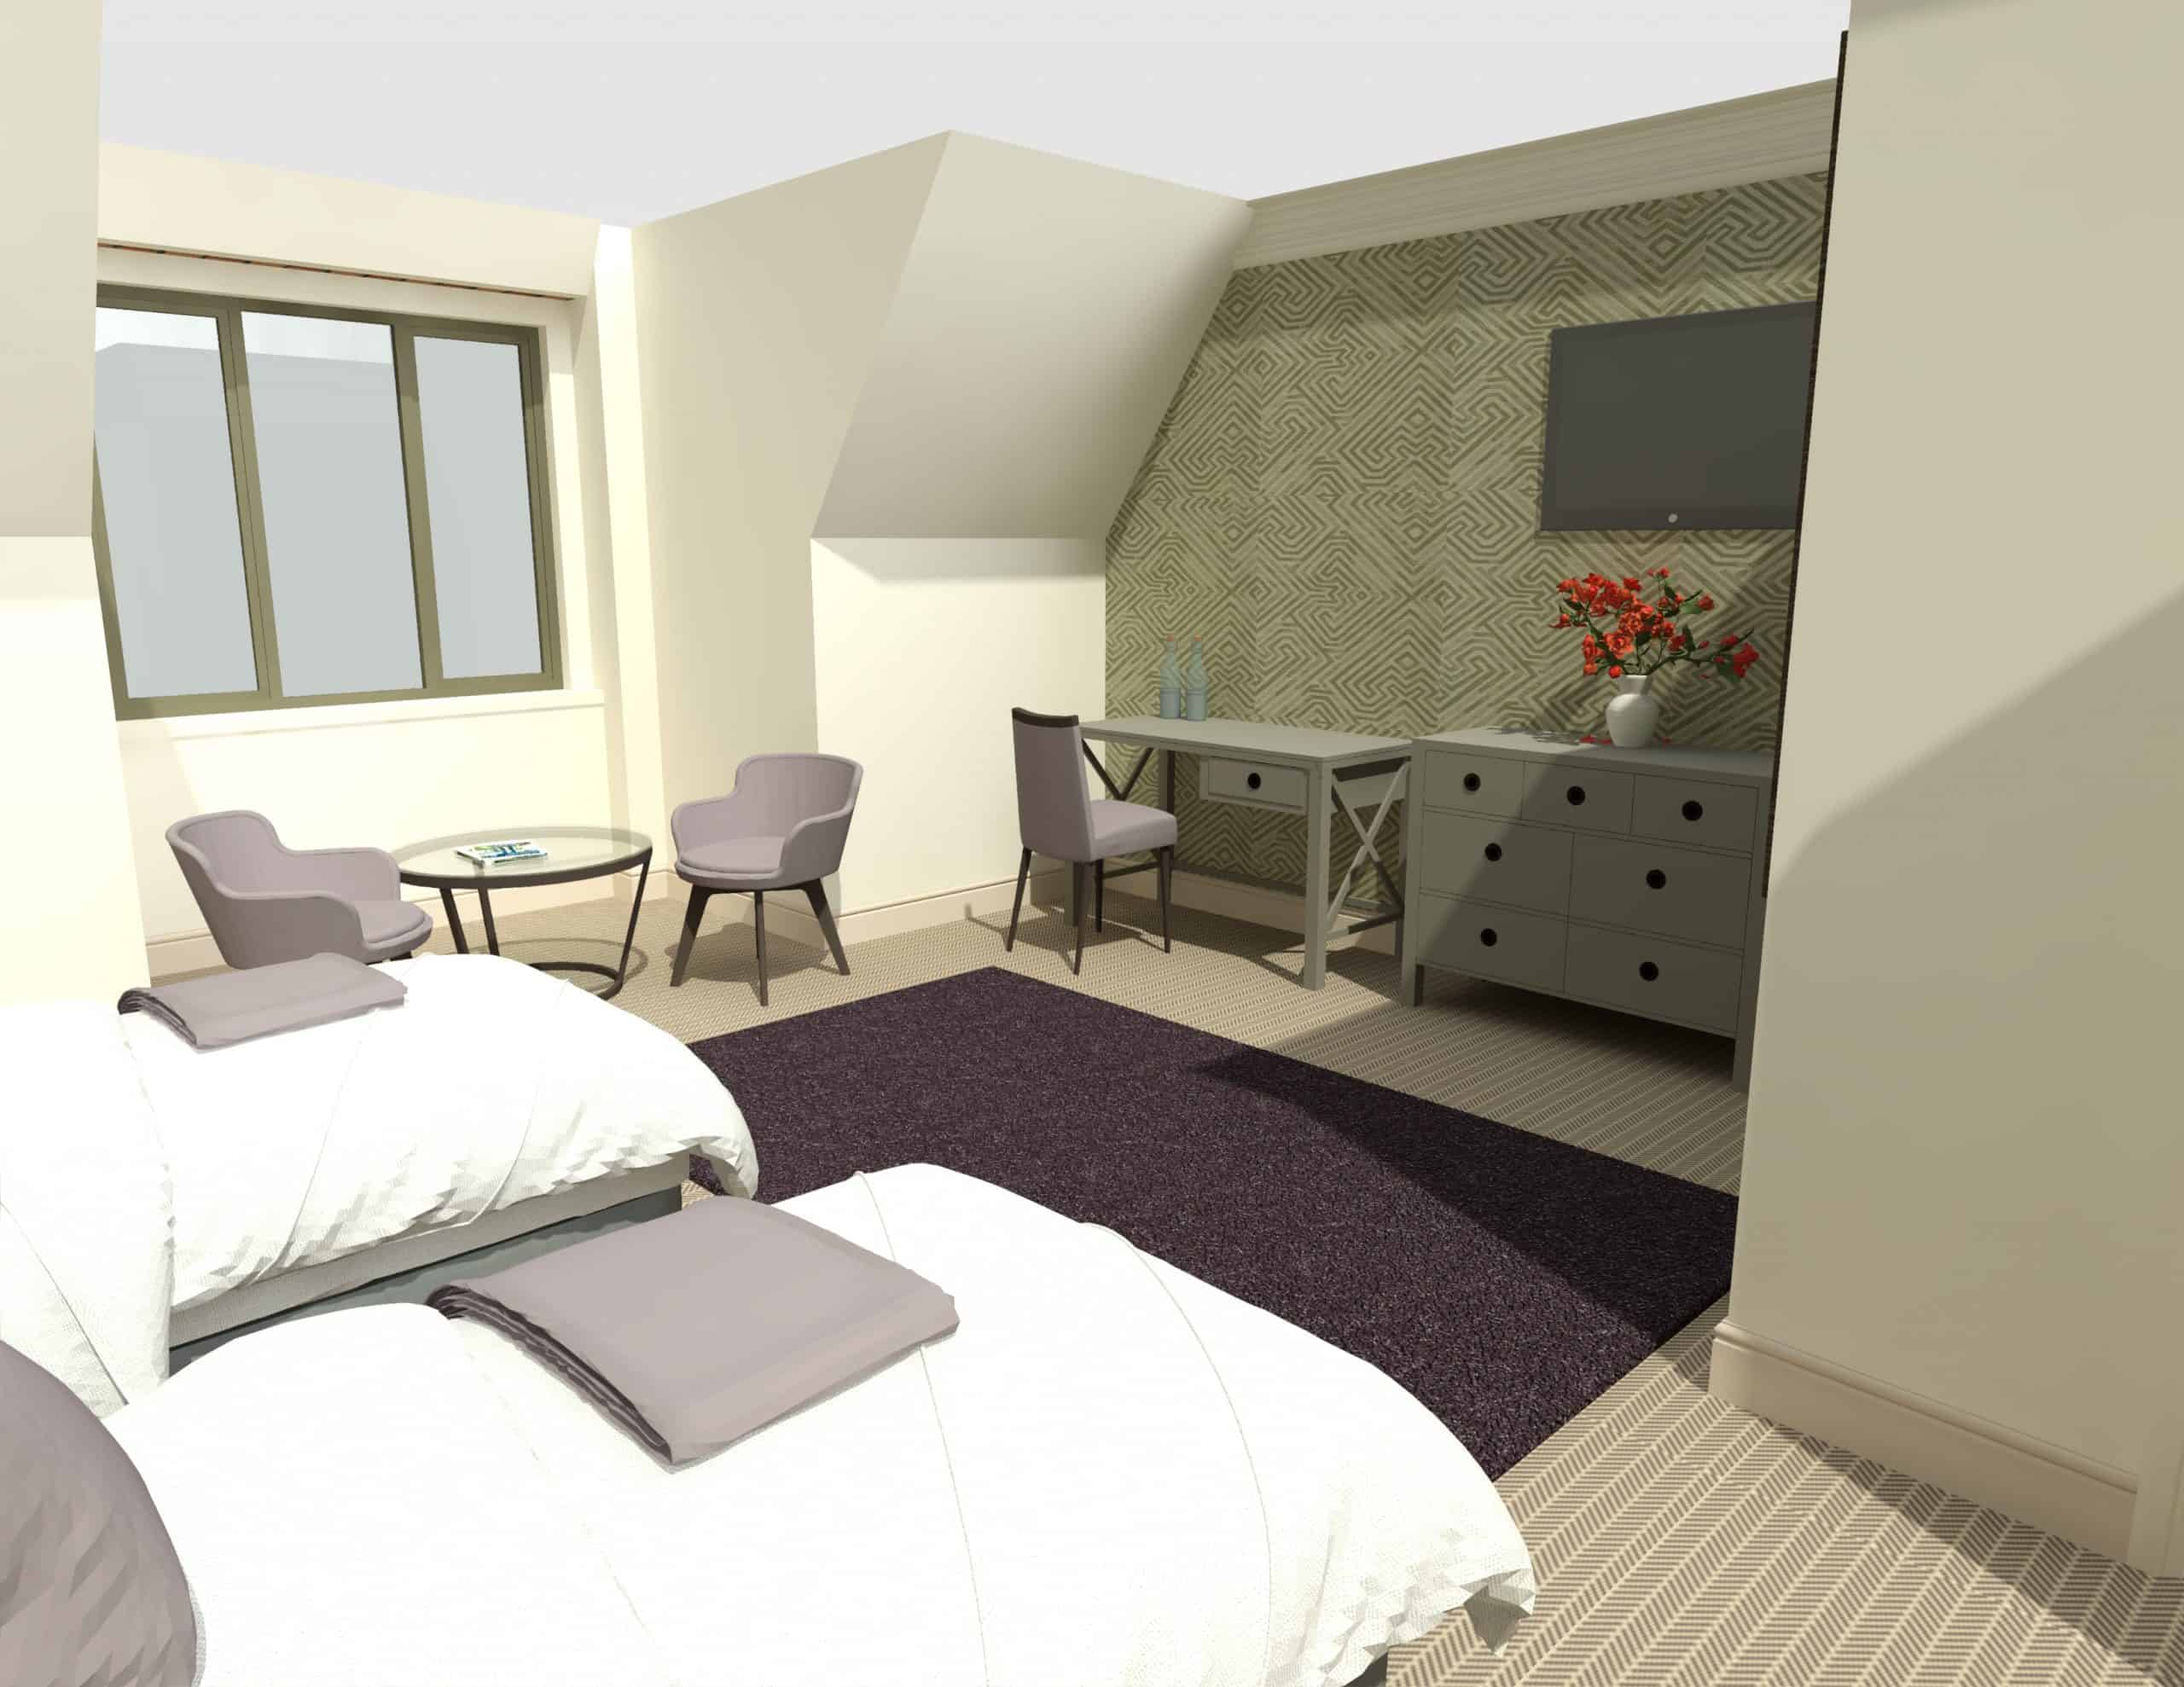 E1282 3Dmodel03 - 1st Flr Interior - Heacham Manor-Temp0024